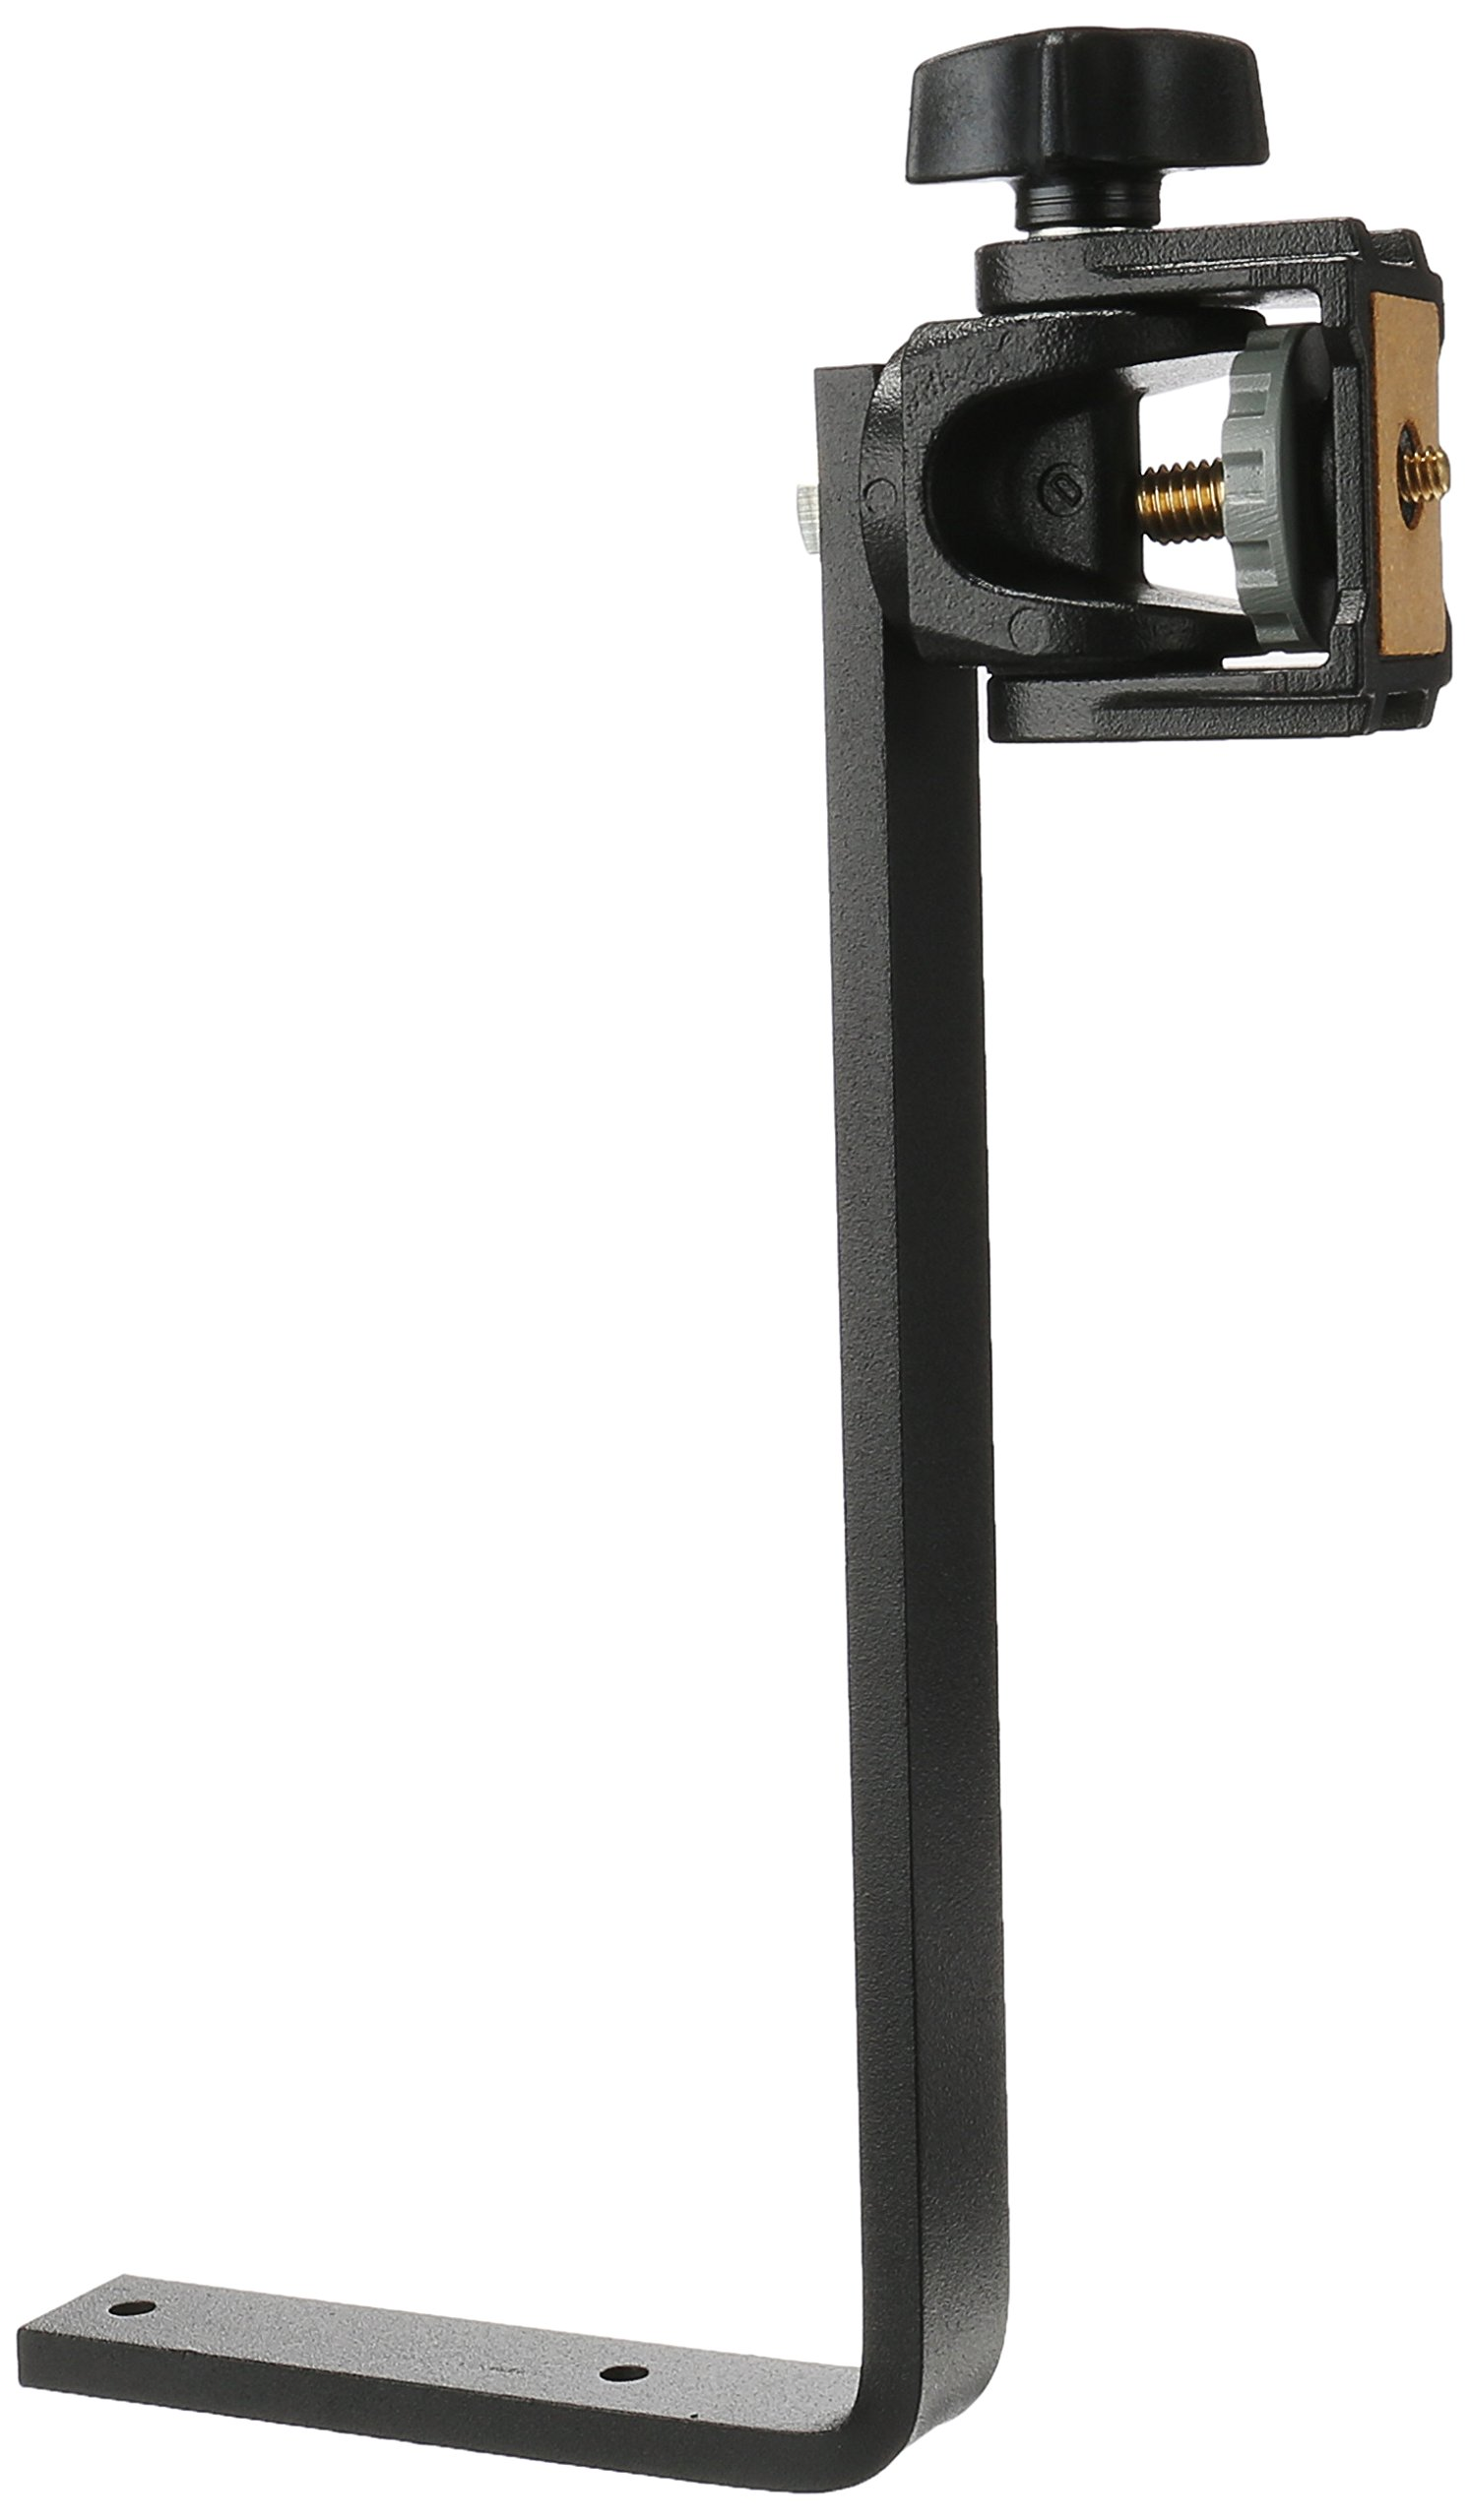 Manfrotto 356 Wall Mount Camera Support - Replaces 3277